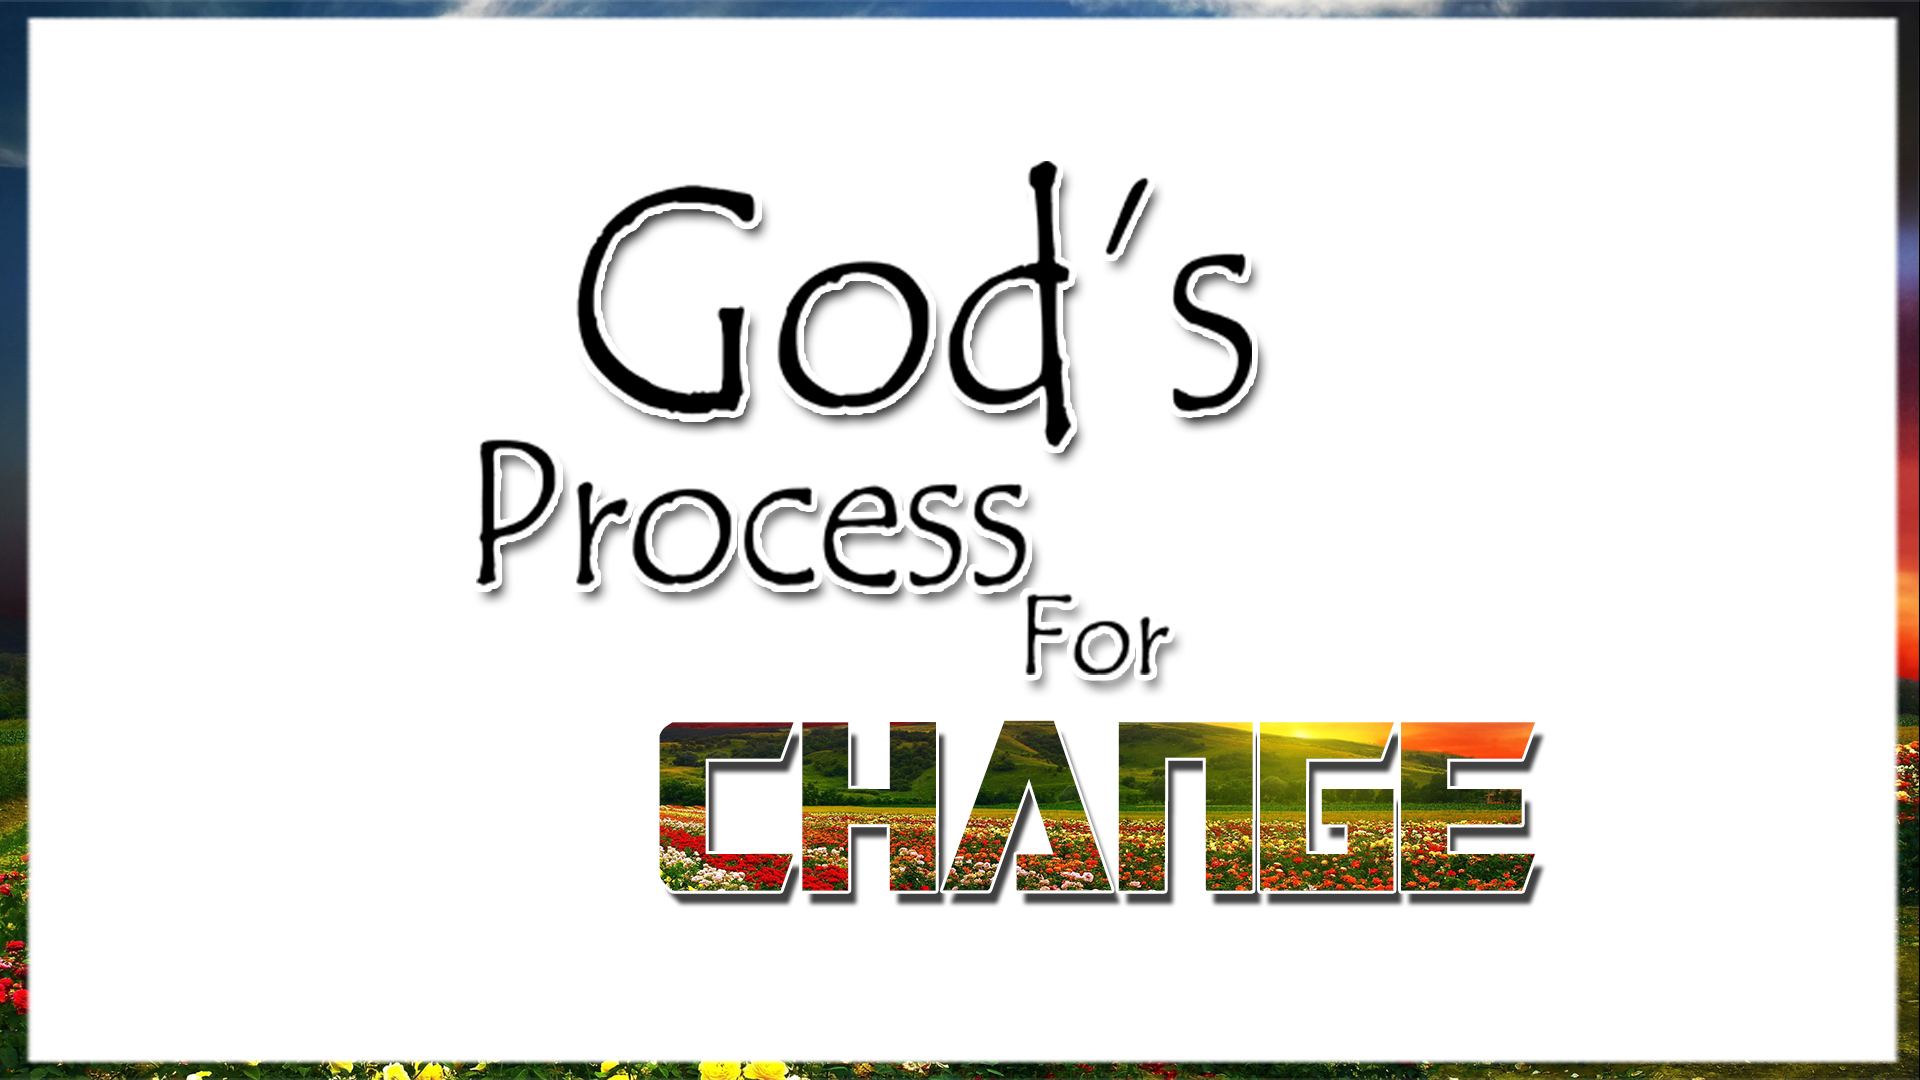 God's Process For Change